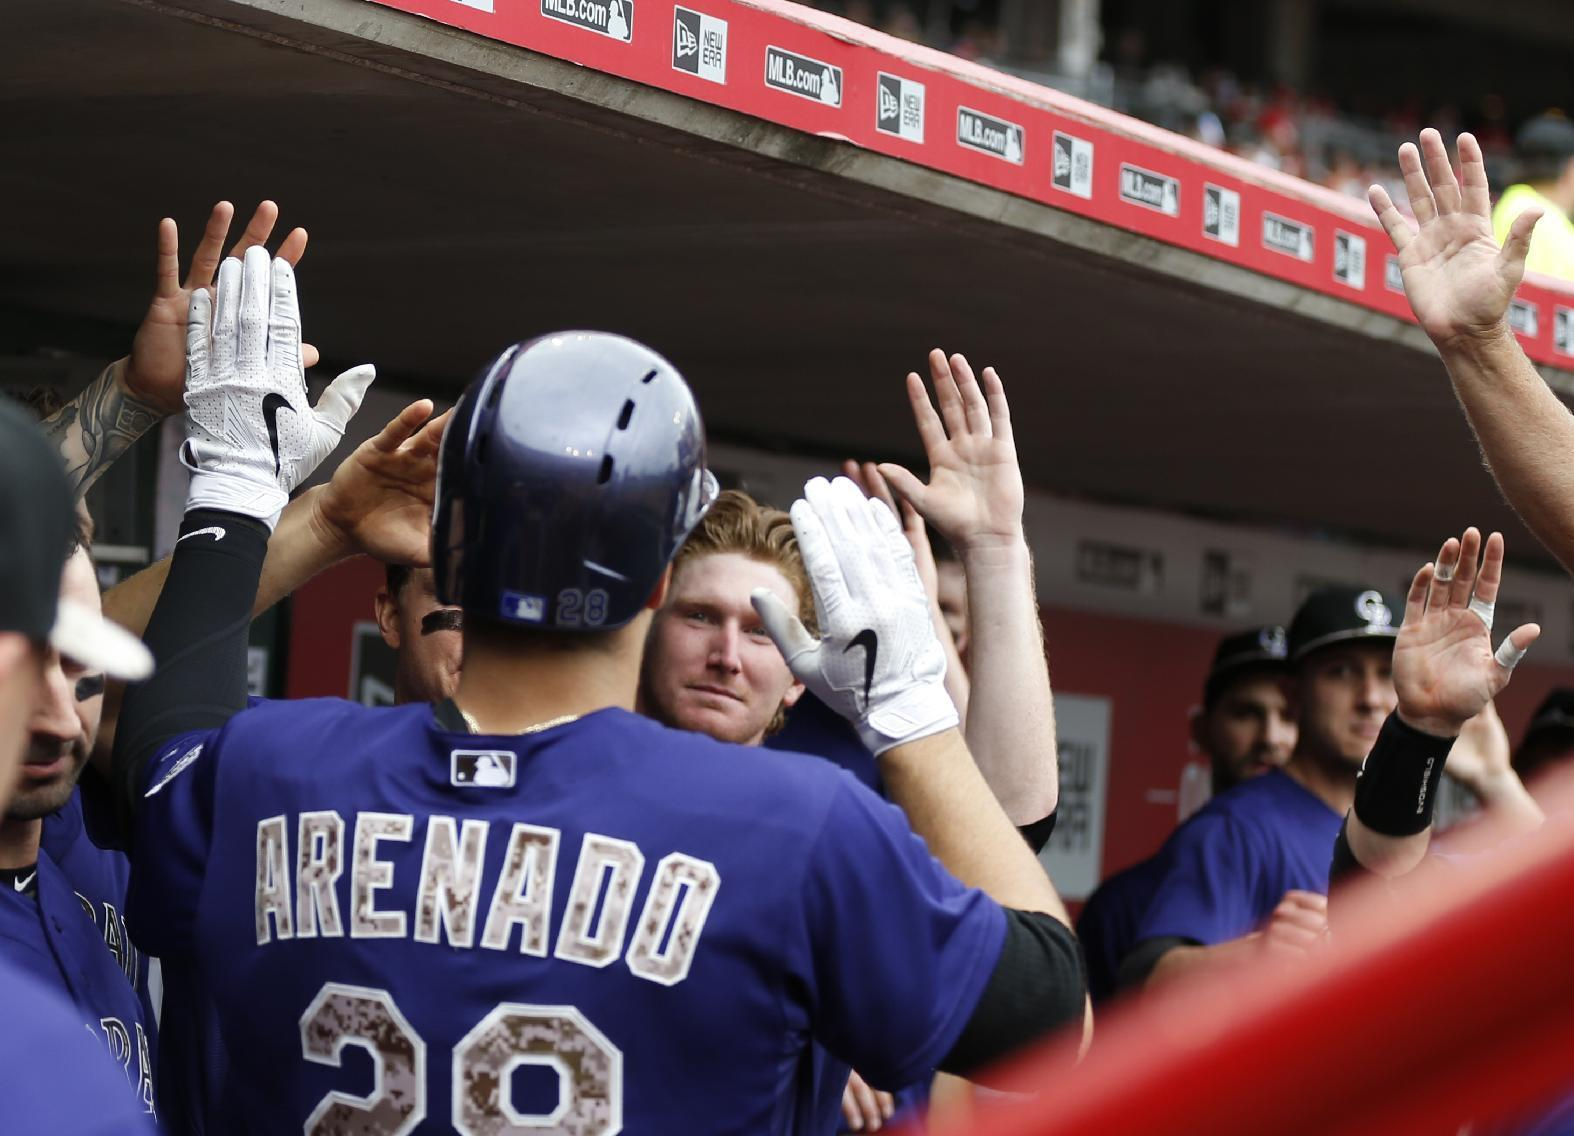 Reds lose 9th straight, Arenado leads Rockies to 5-4 win